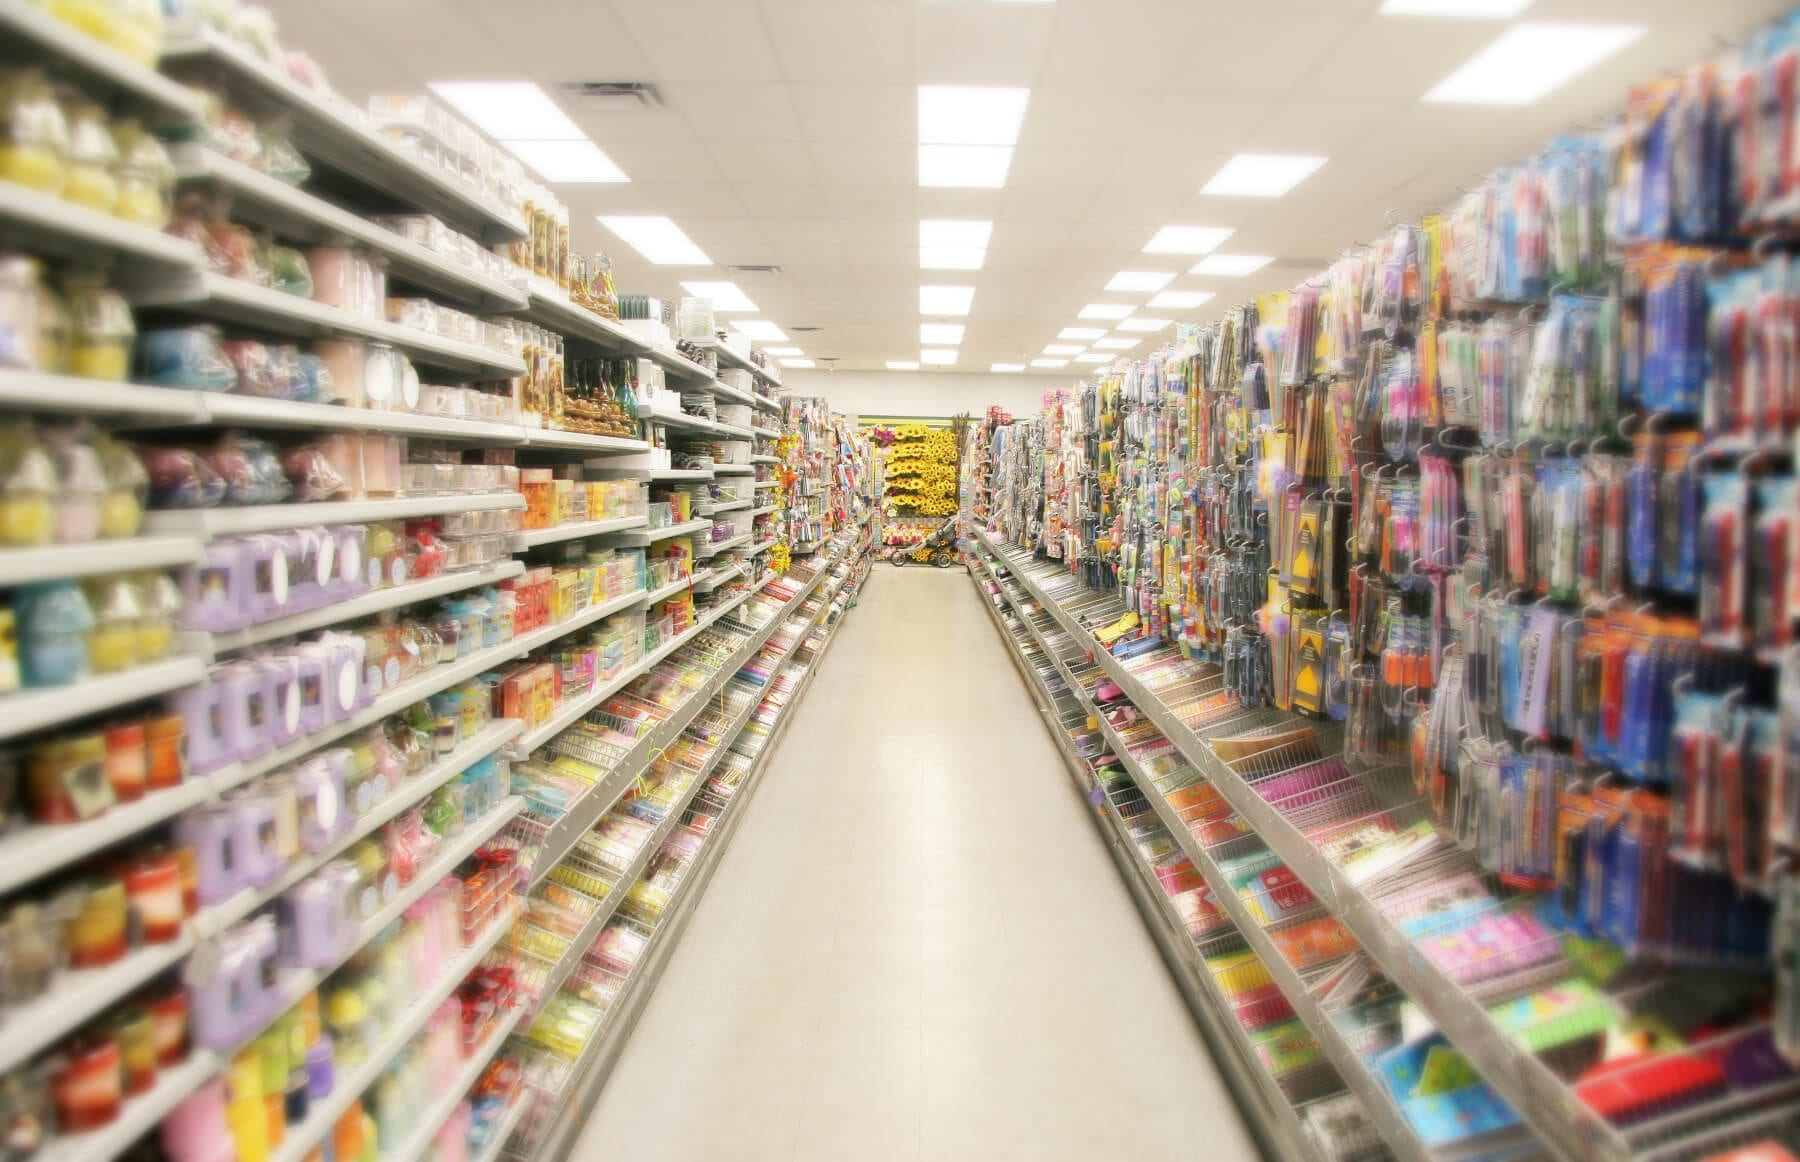 Why merchandising matters to suppliers